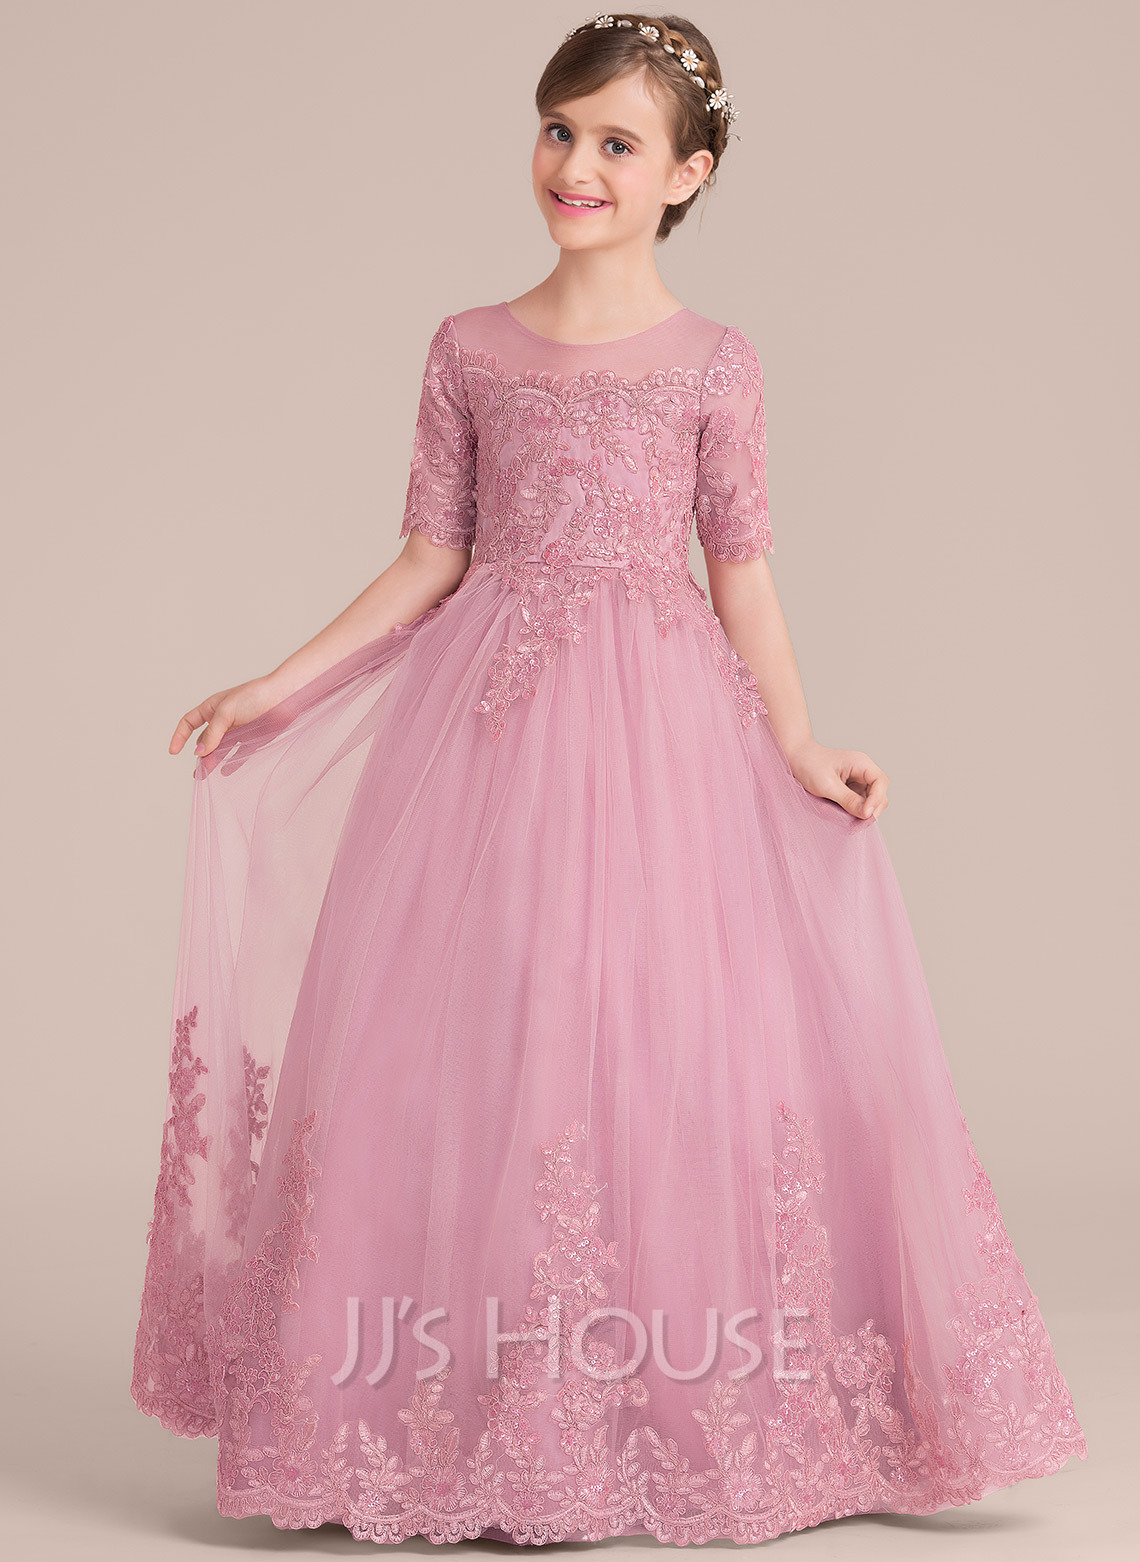 Find affordable flower girl dresses jjshouse ball gown floor length flower girl dress tullelace 12 sleeves izmirmasajfo Images